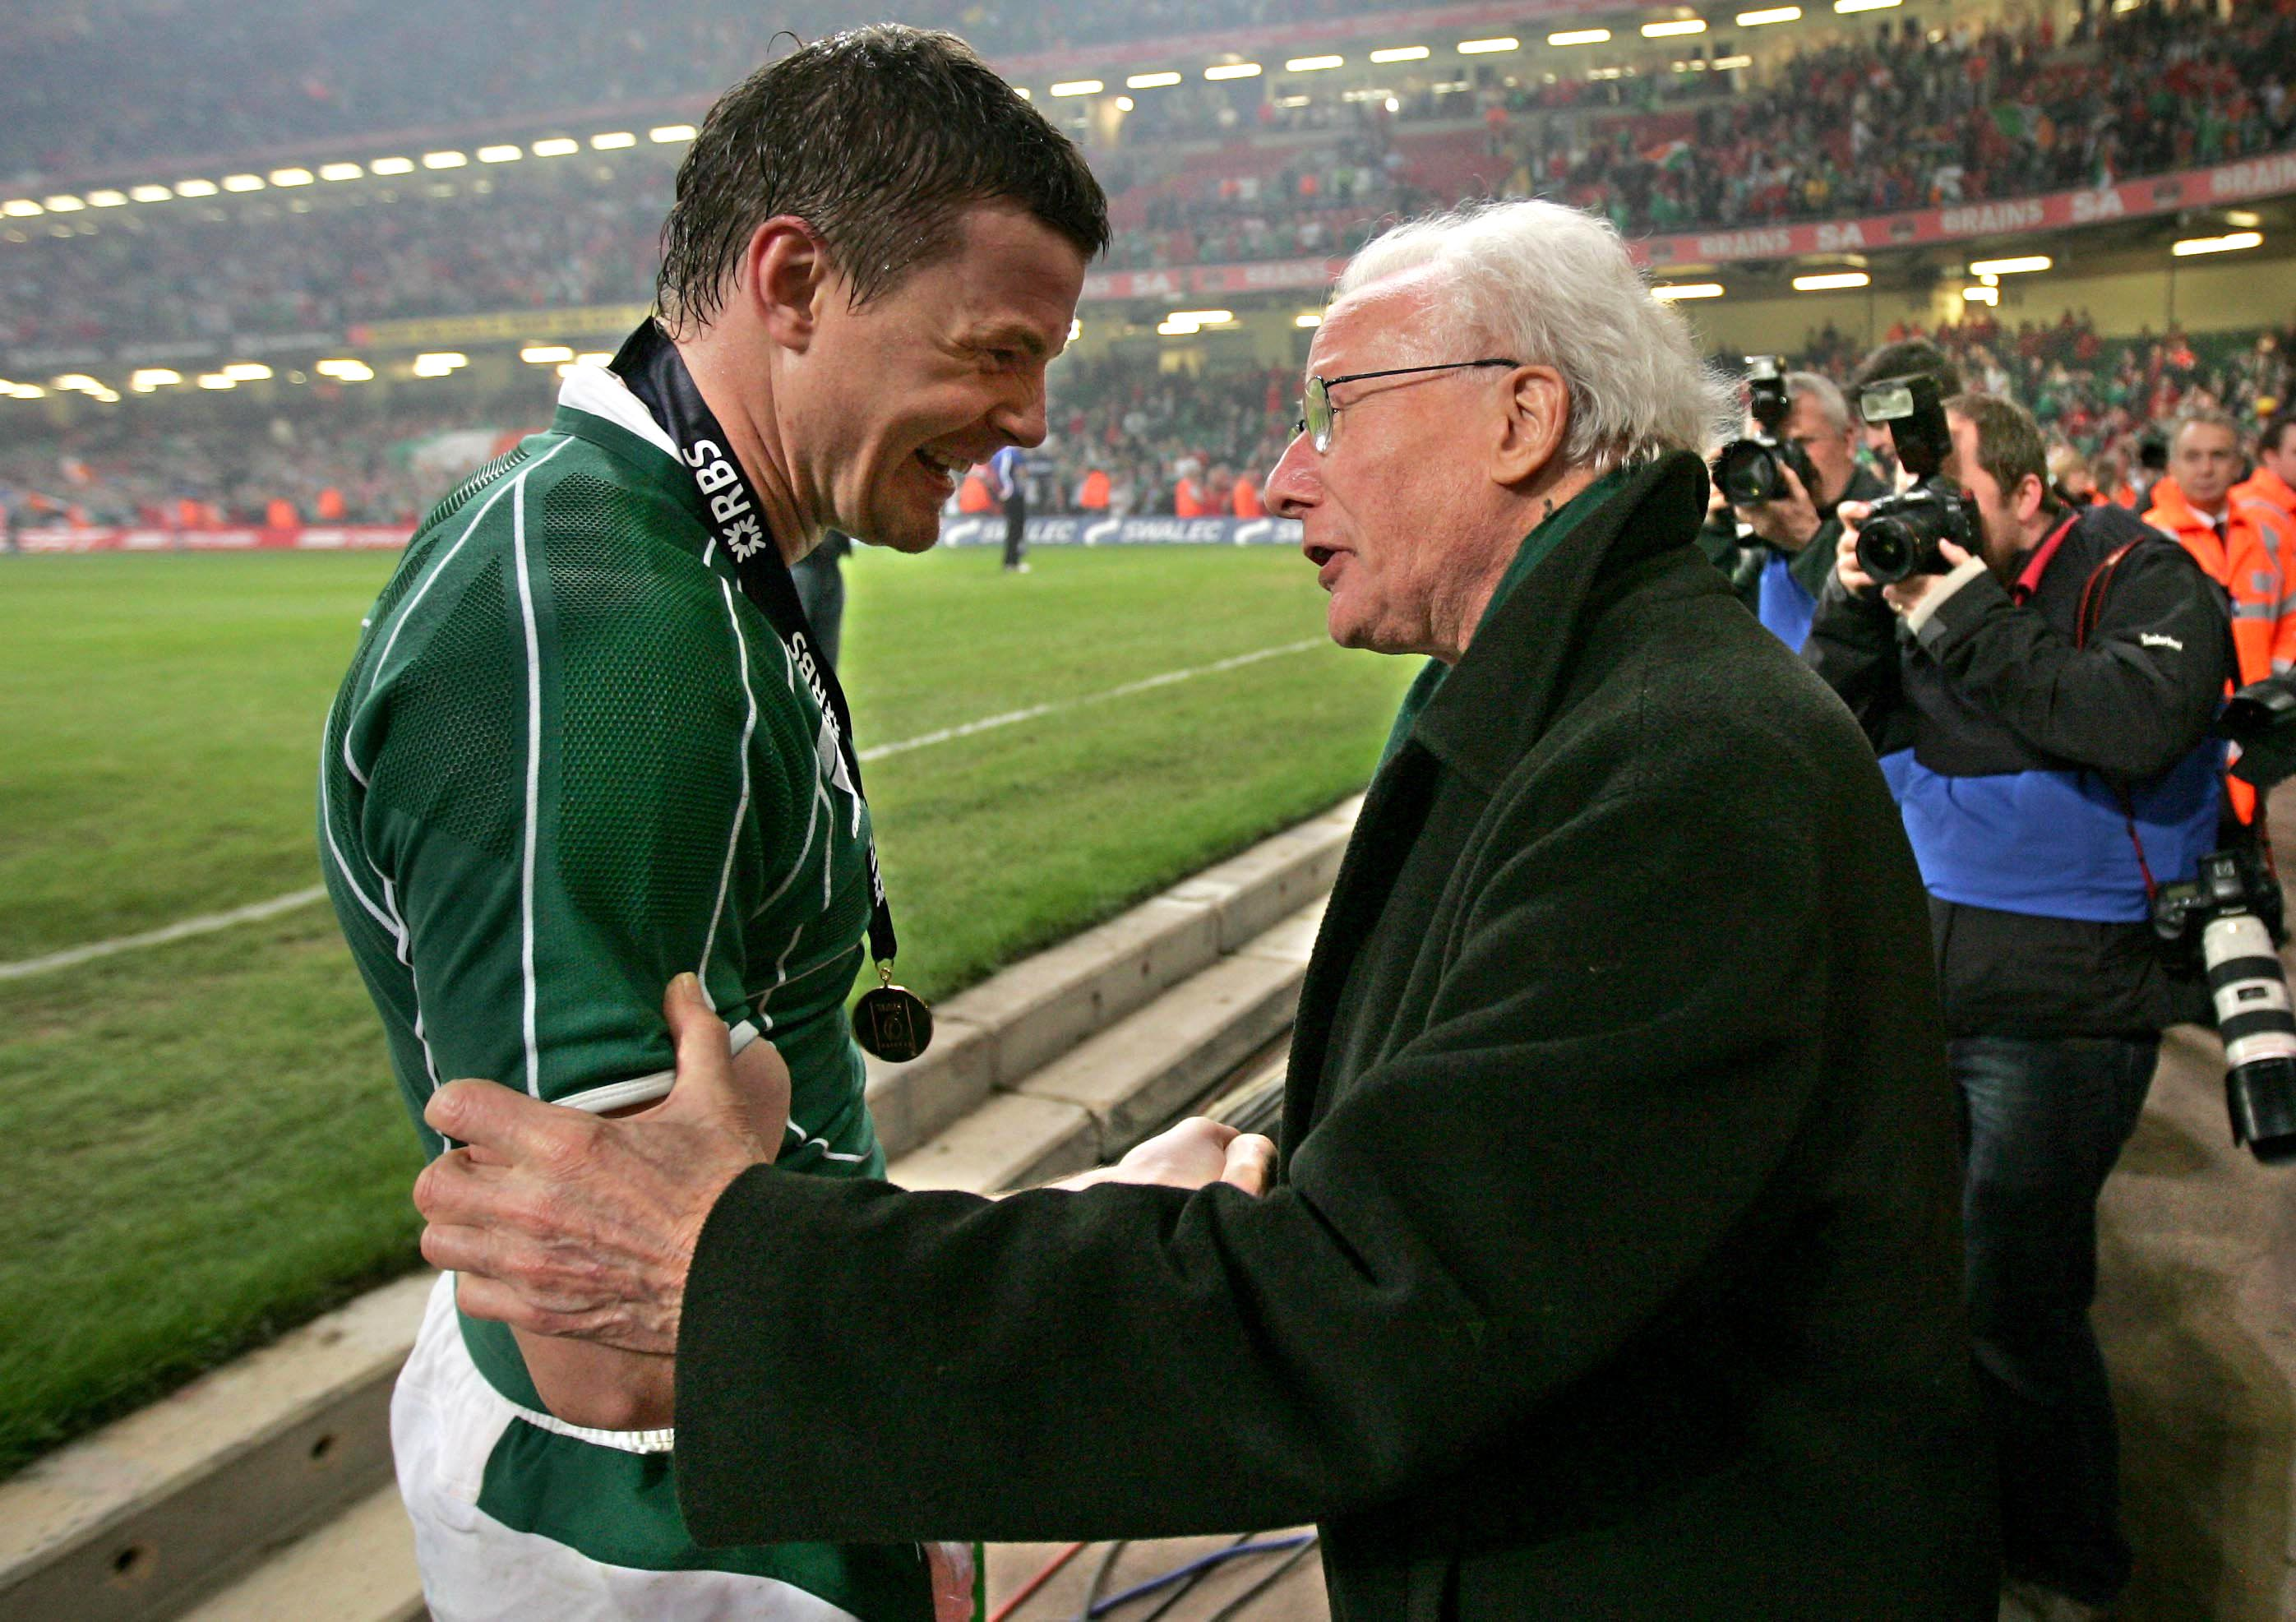 Brian O'Driscoll celebrates with Jack Kyle 2009 28/11/2014